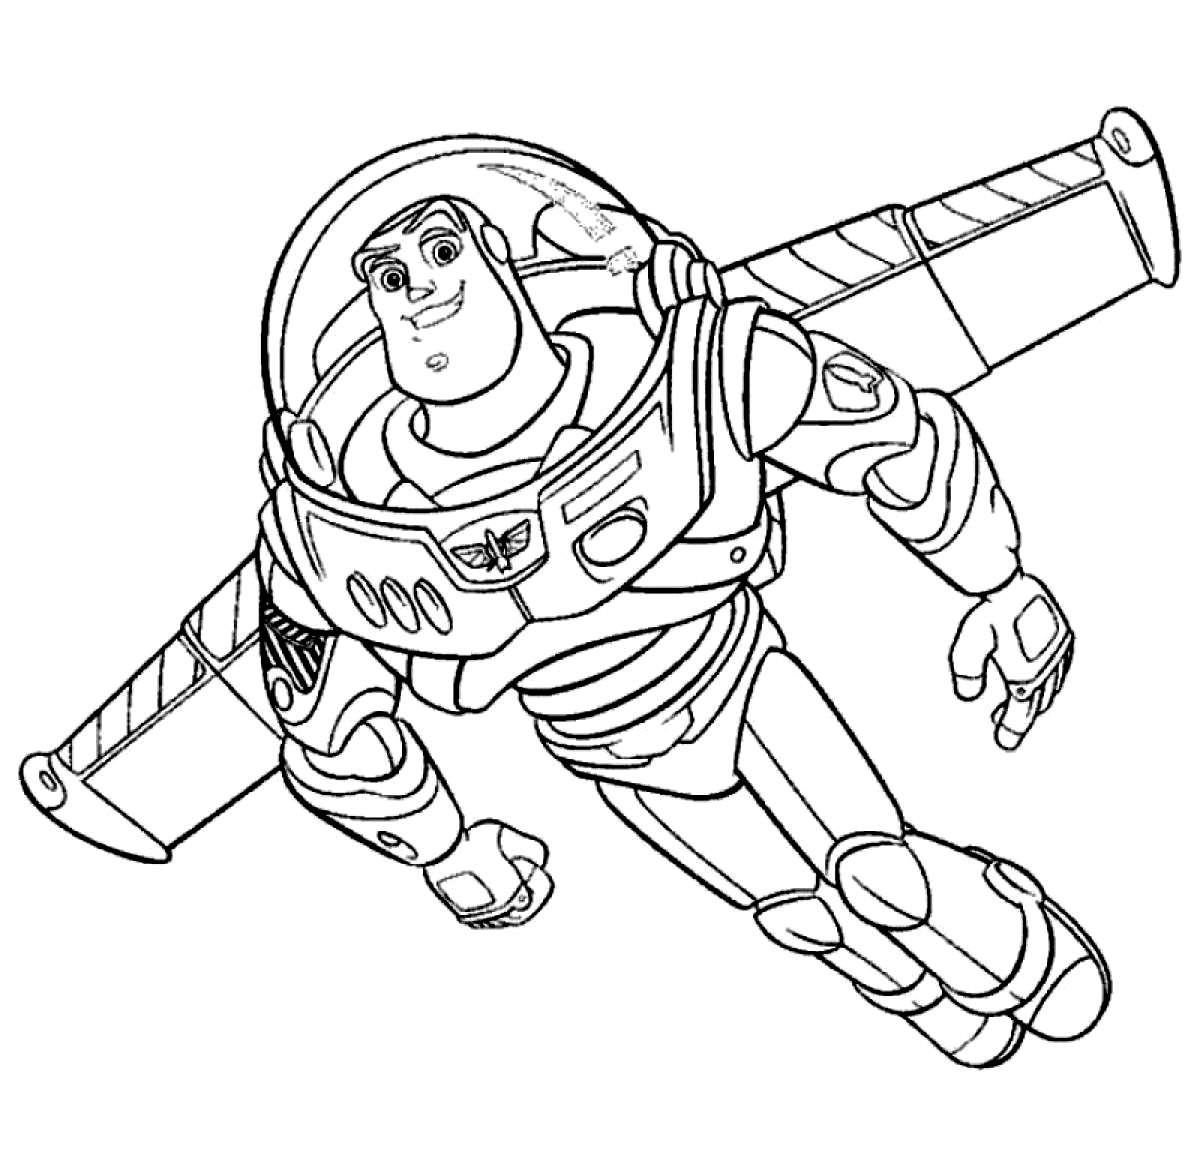 buzz lightyear coloring pages printable - Buzz Lightyear Coloring Pages Free